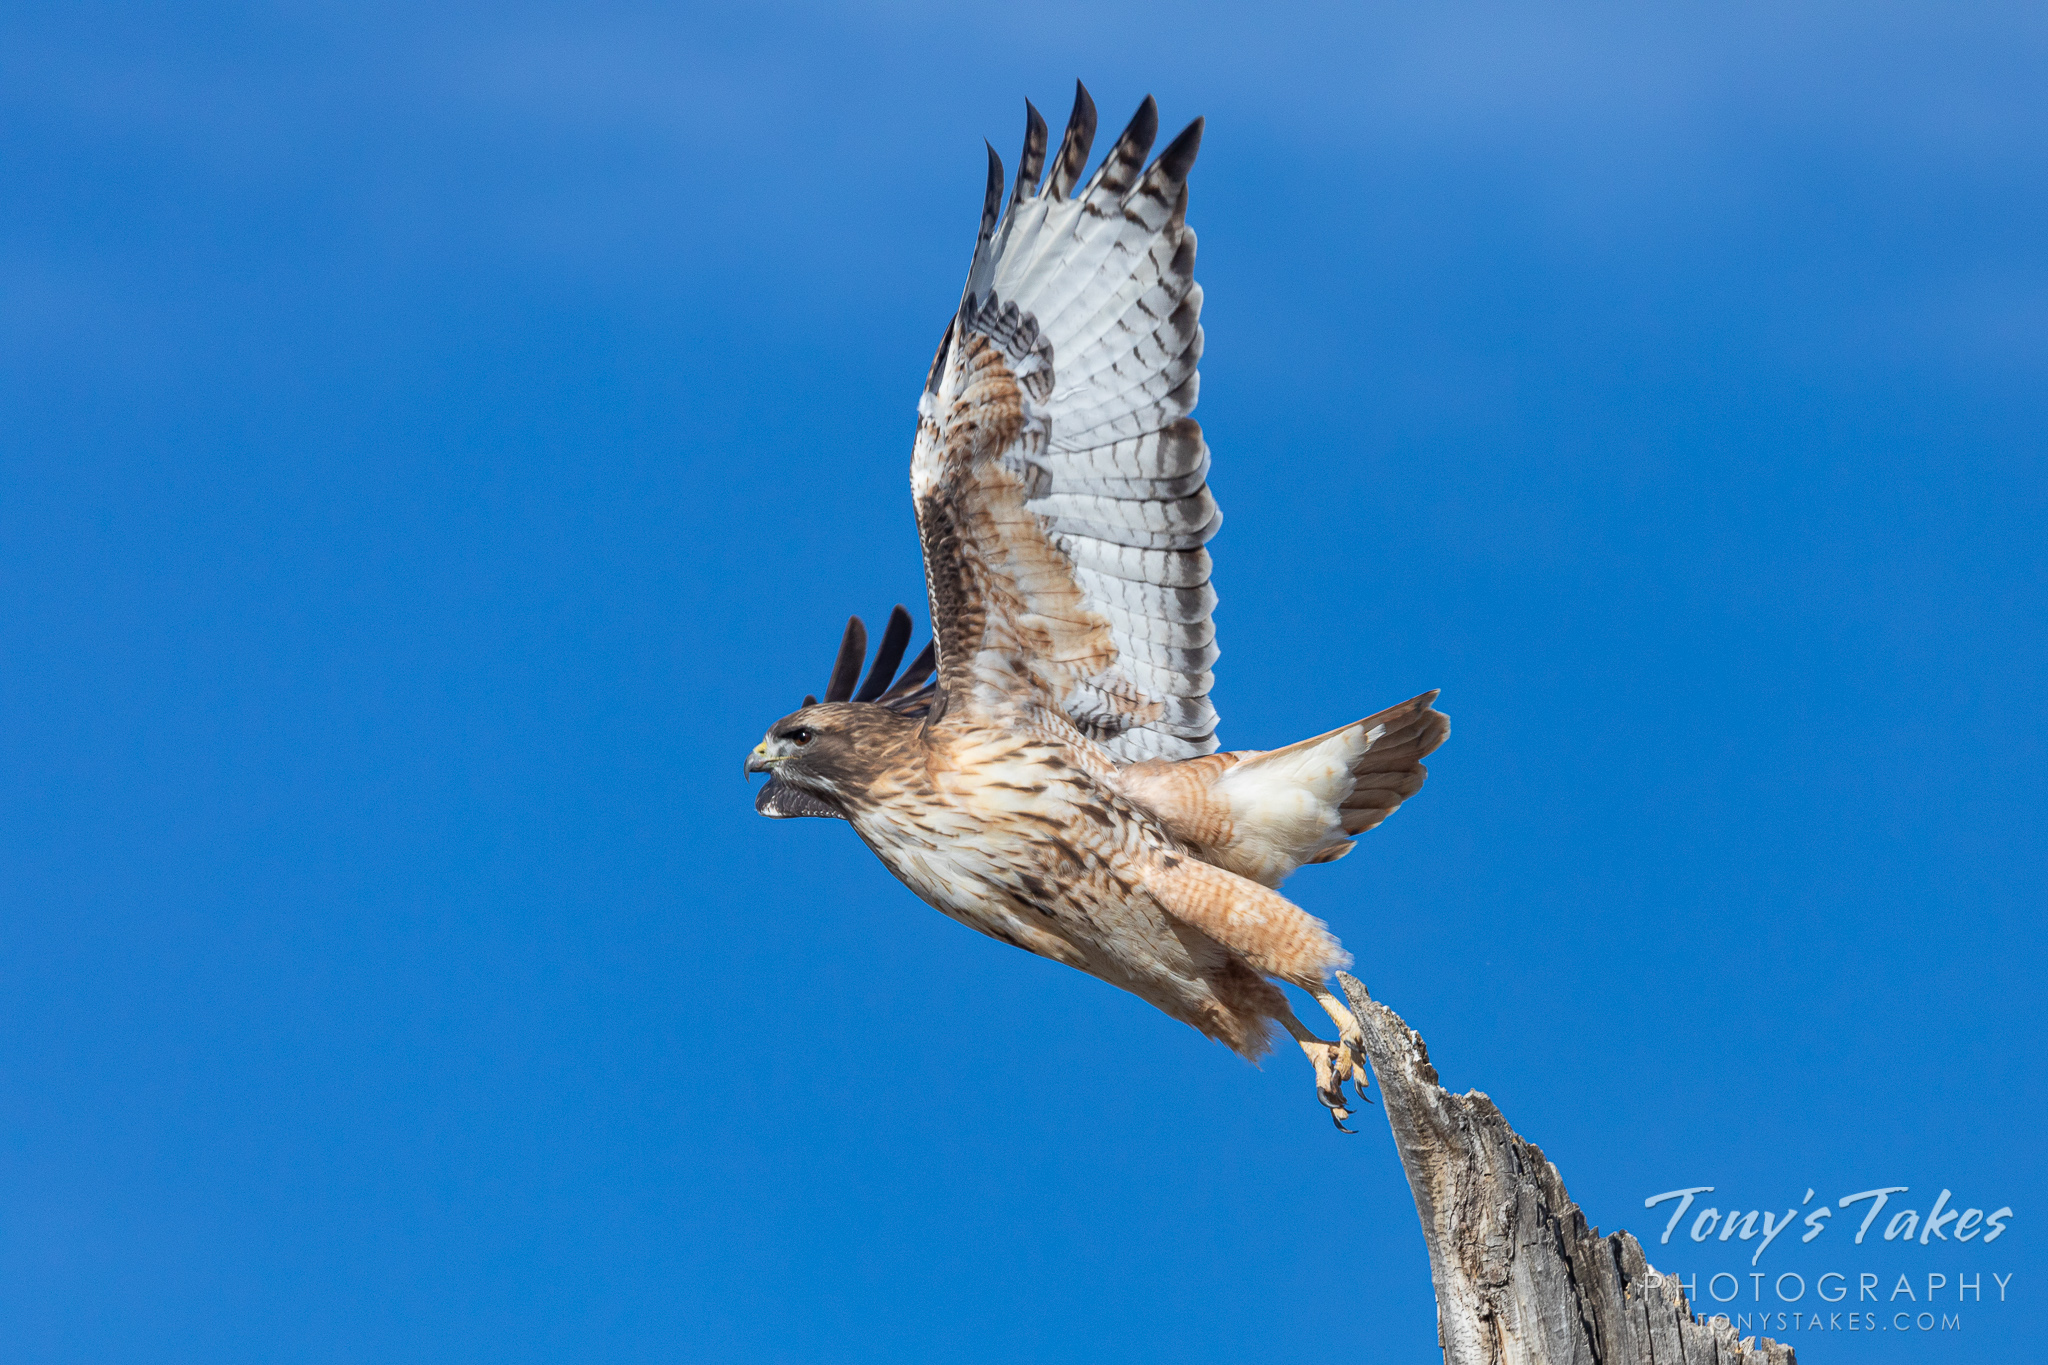 A red tailed hawk launches into the air in Thornton, Colorado. (© Tony's Takes)